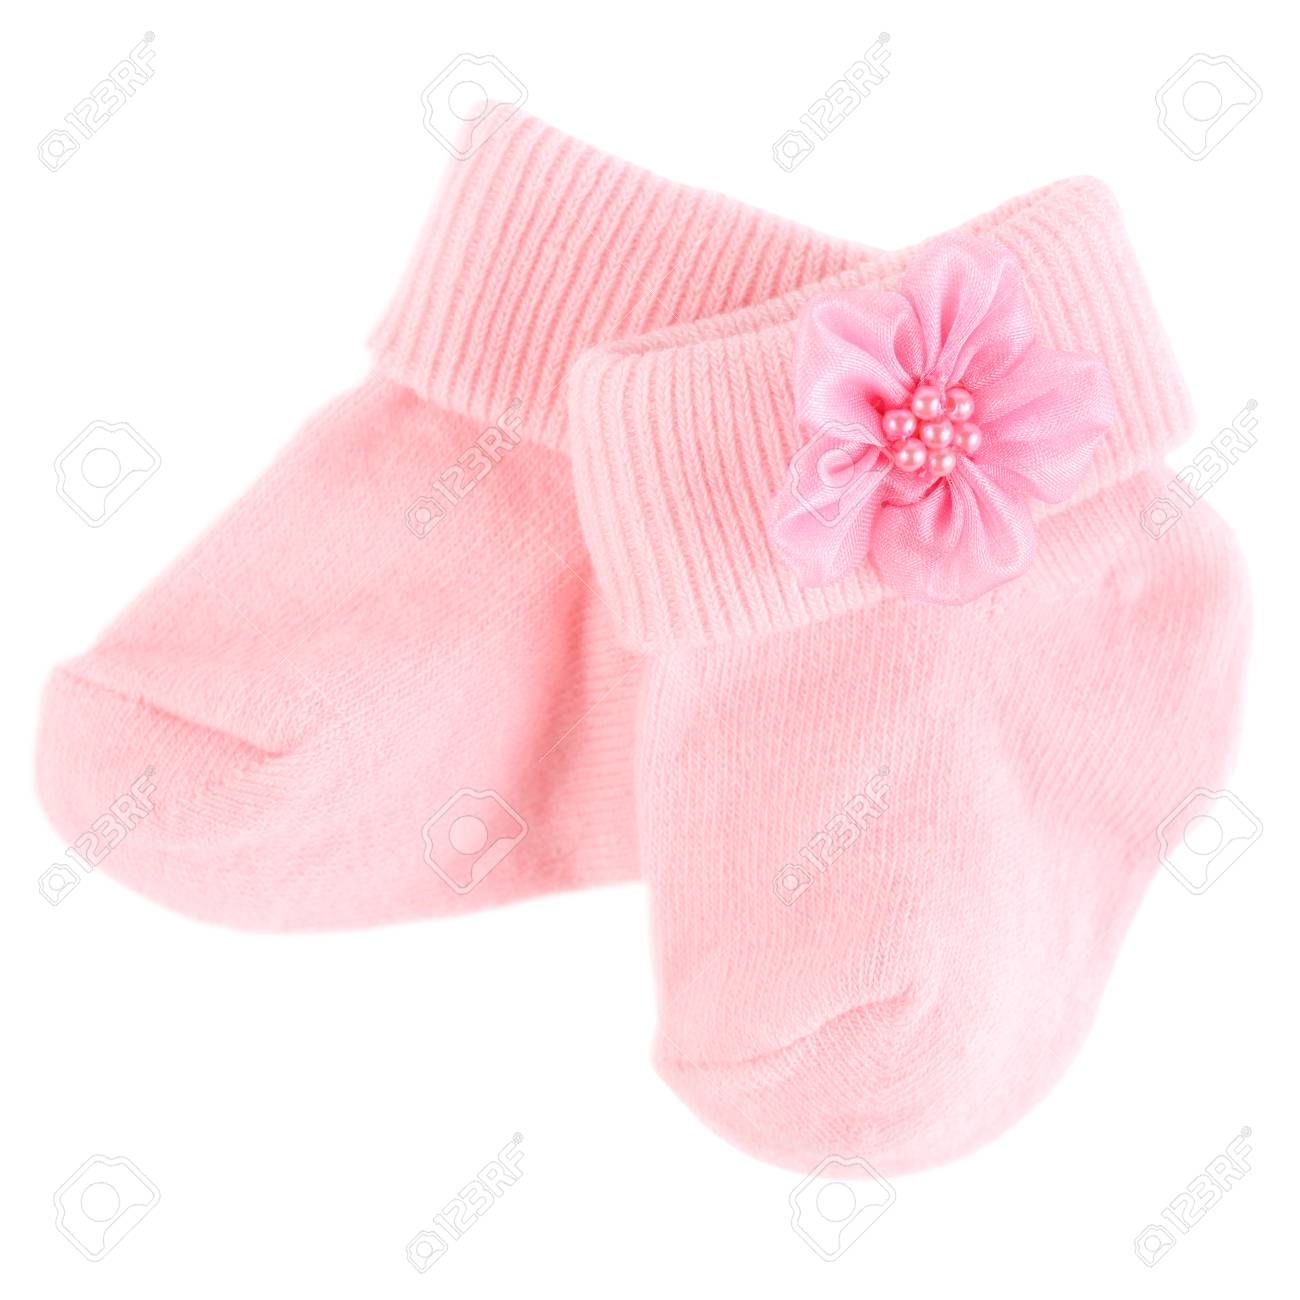 85e7b168df7f6 Pair of pink baby girl socks isolated over a white background Stock Photo -  103773418